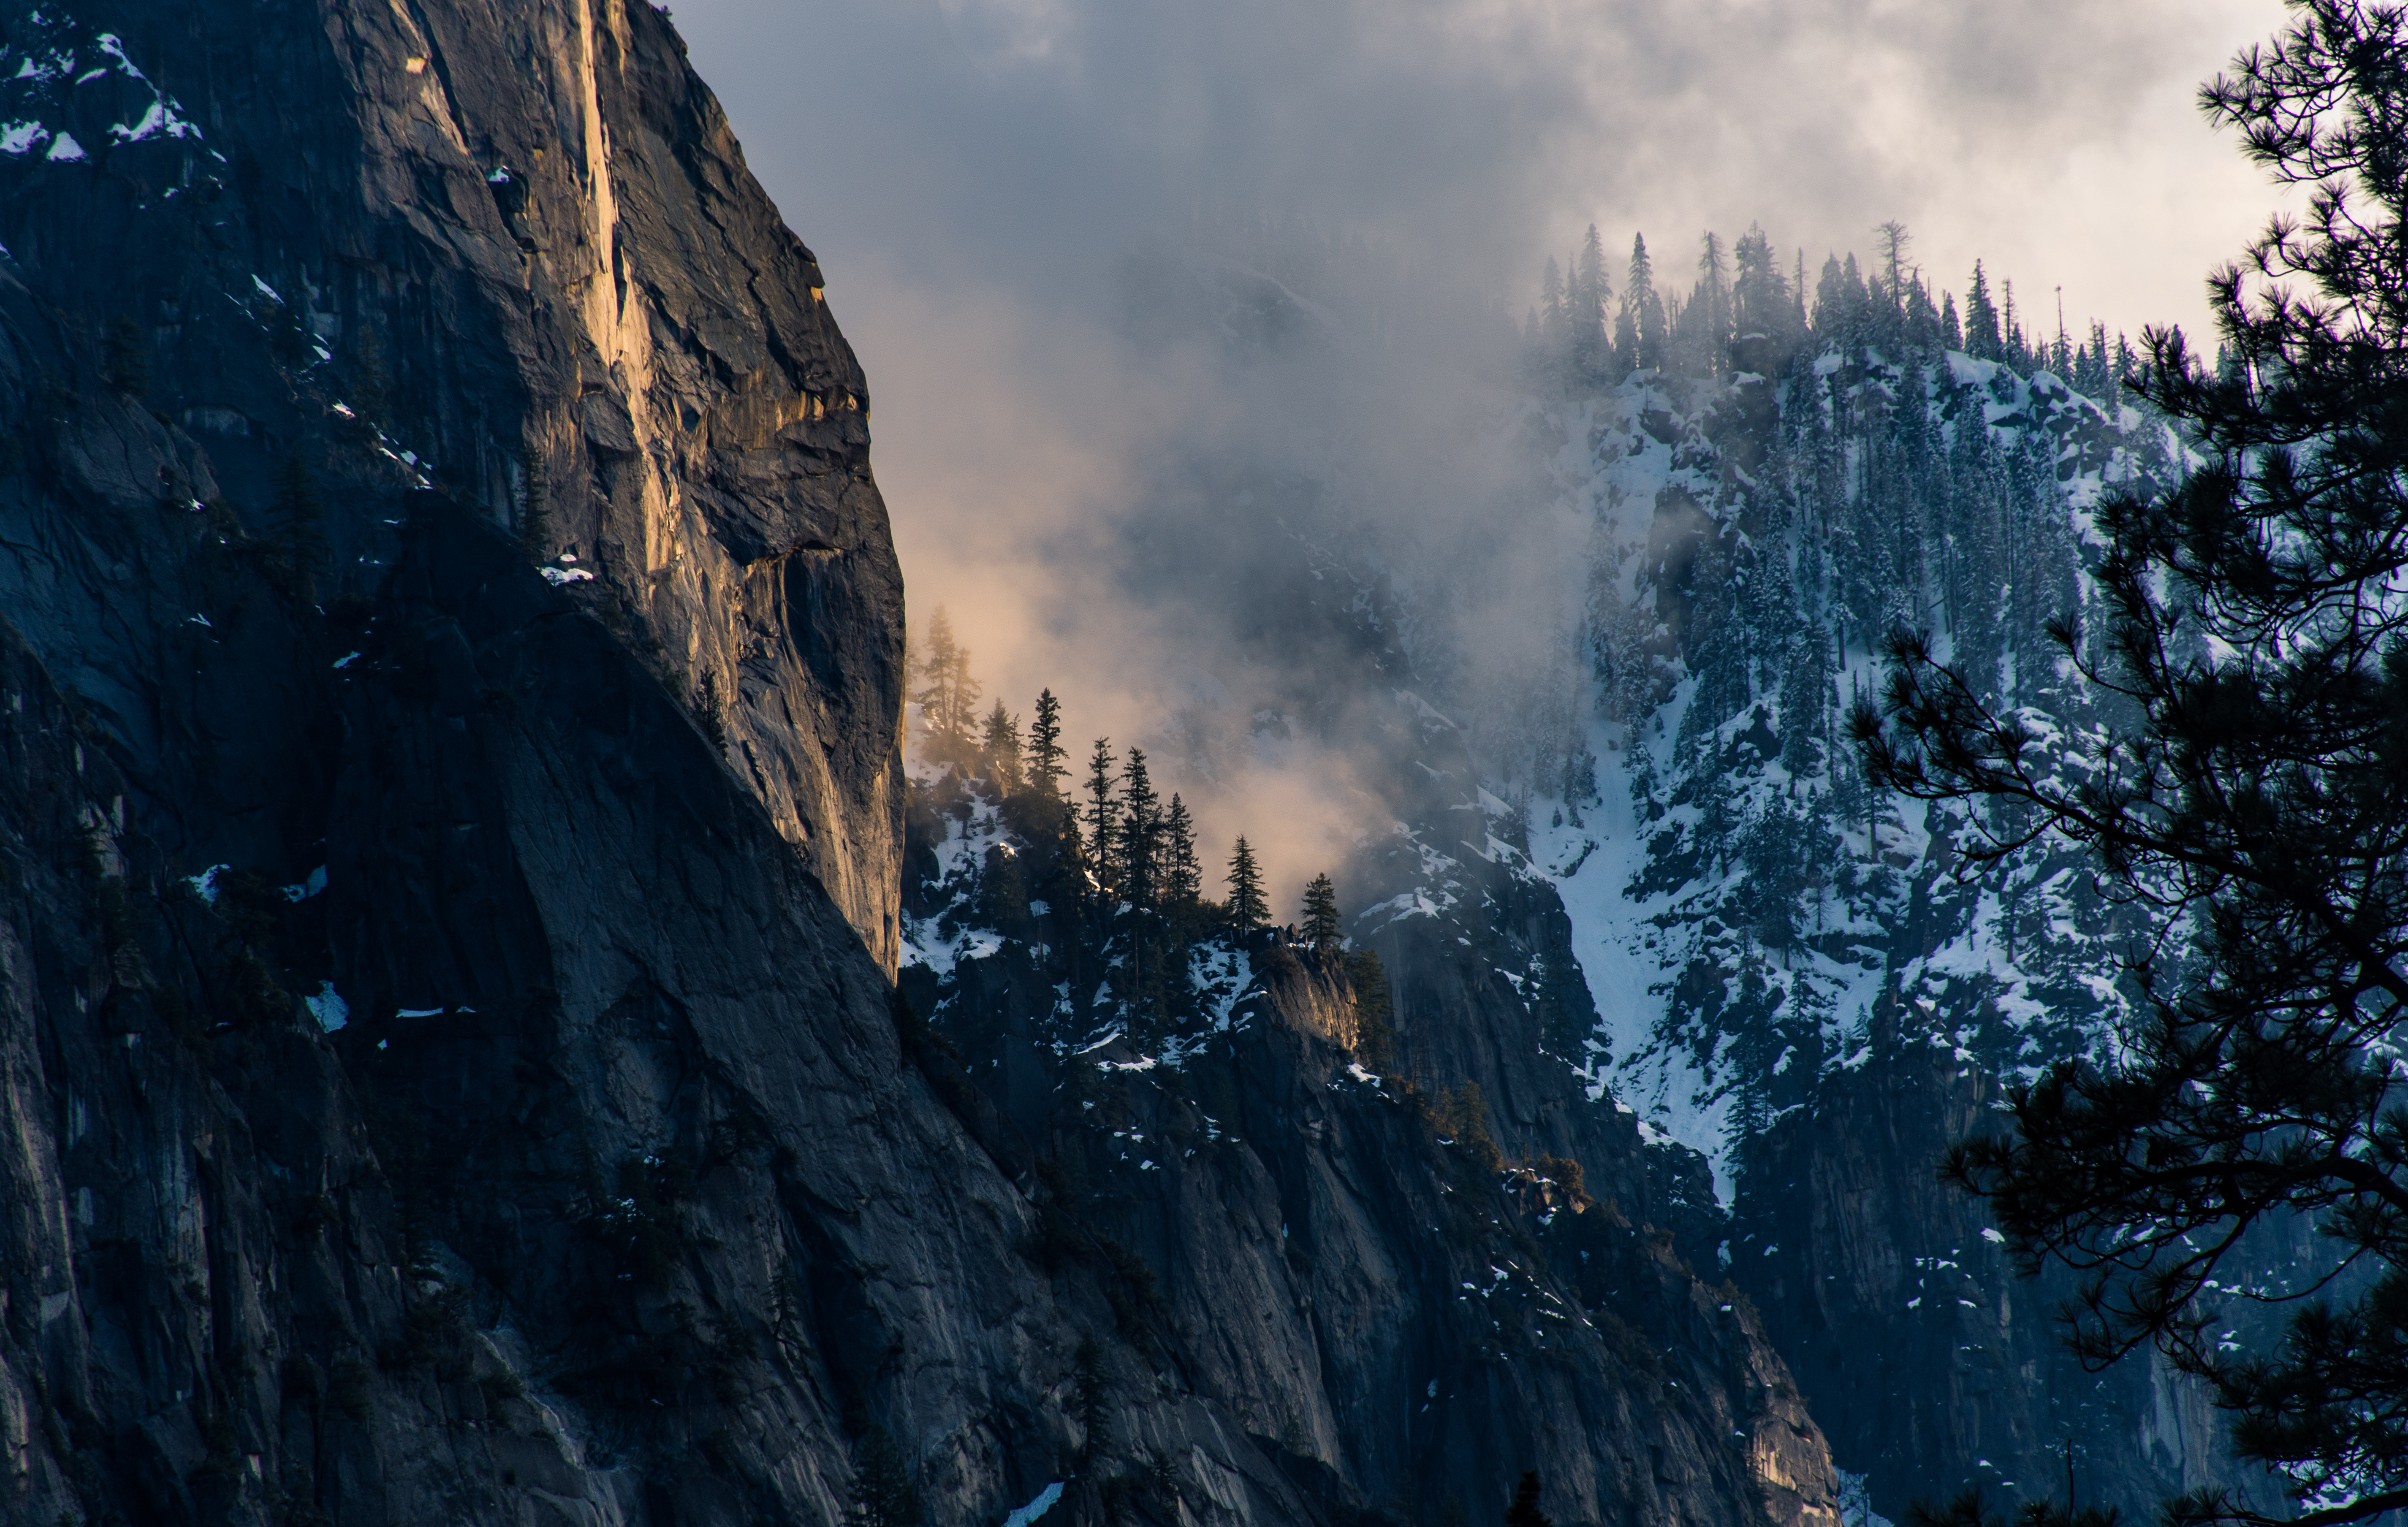 Golden hour landscapes of Yosemite